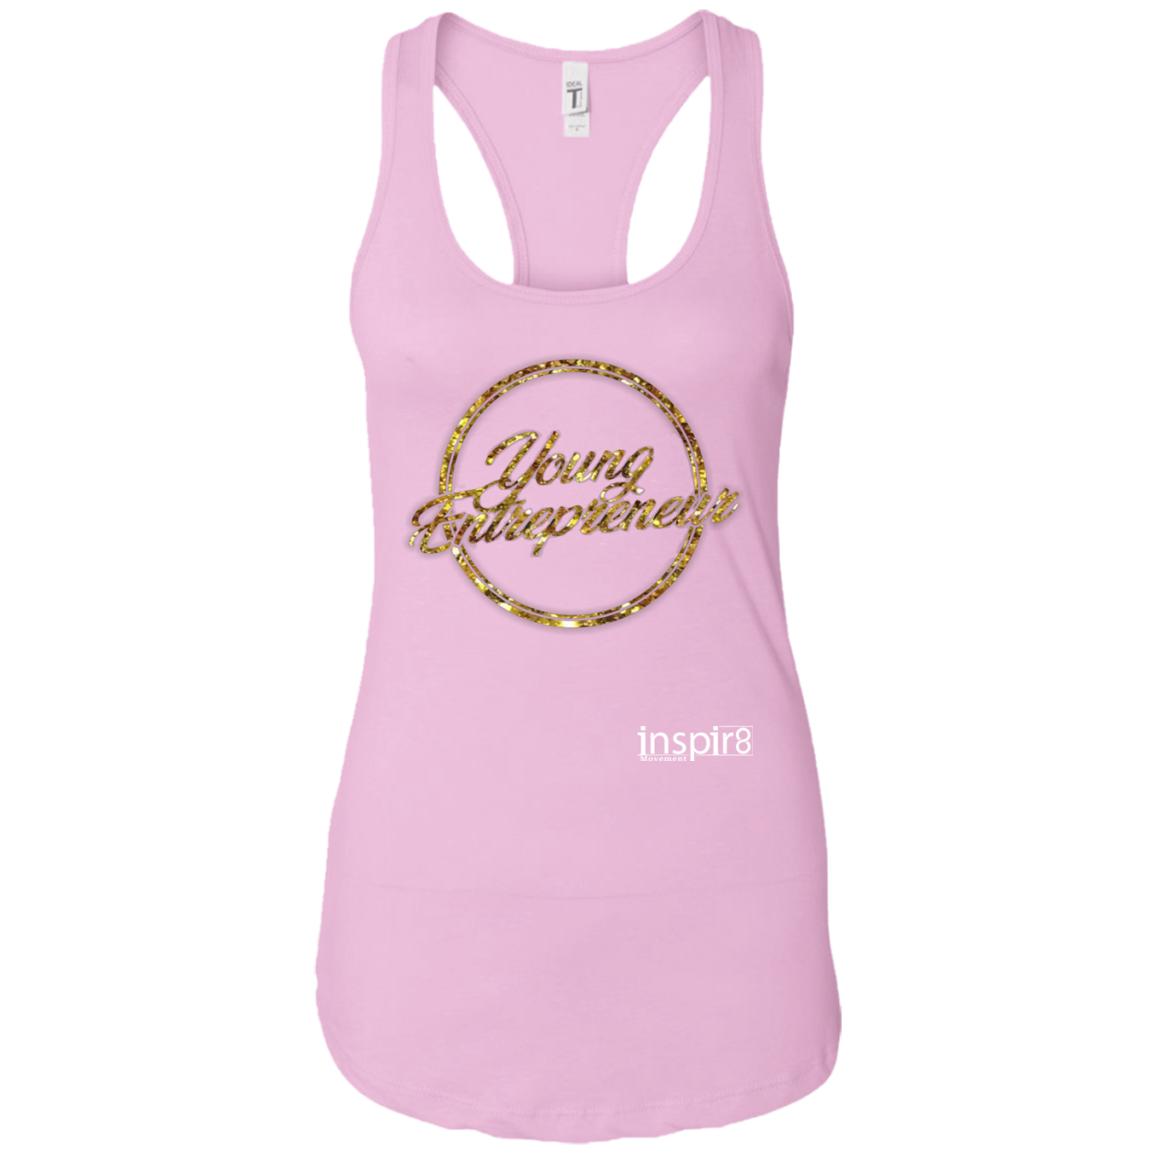 Ladies Tank Top - inspirational and motivational clothing